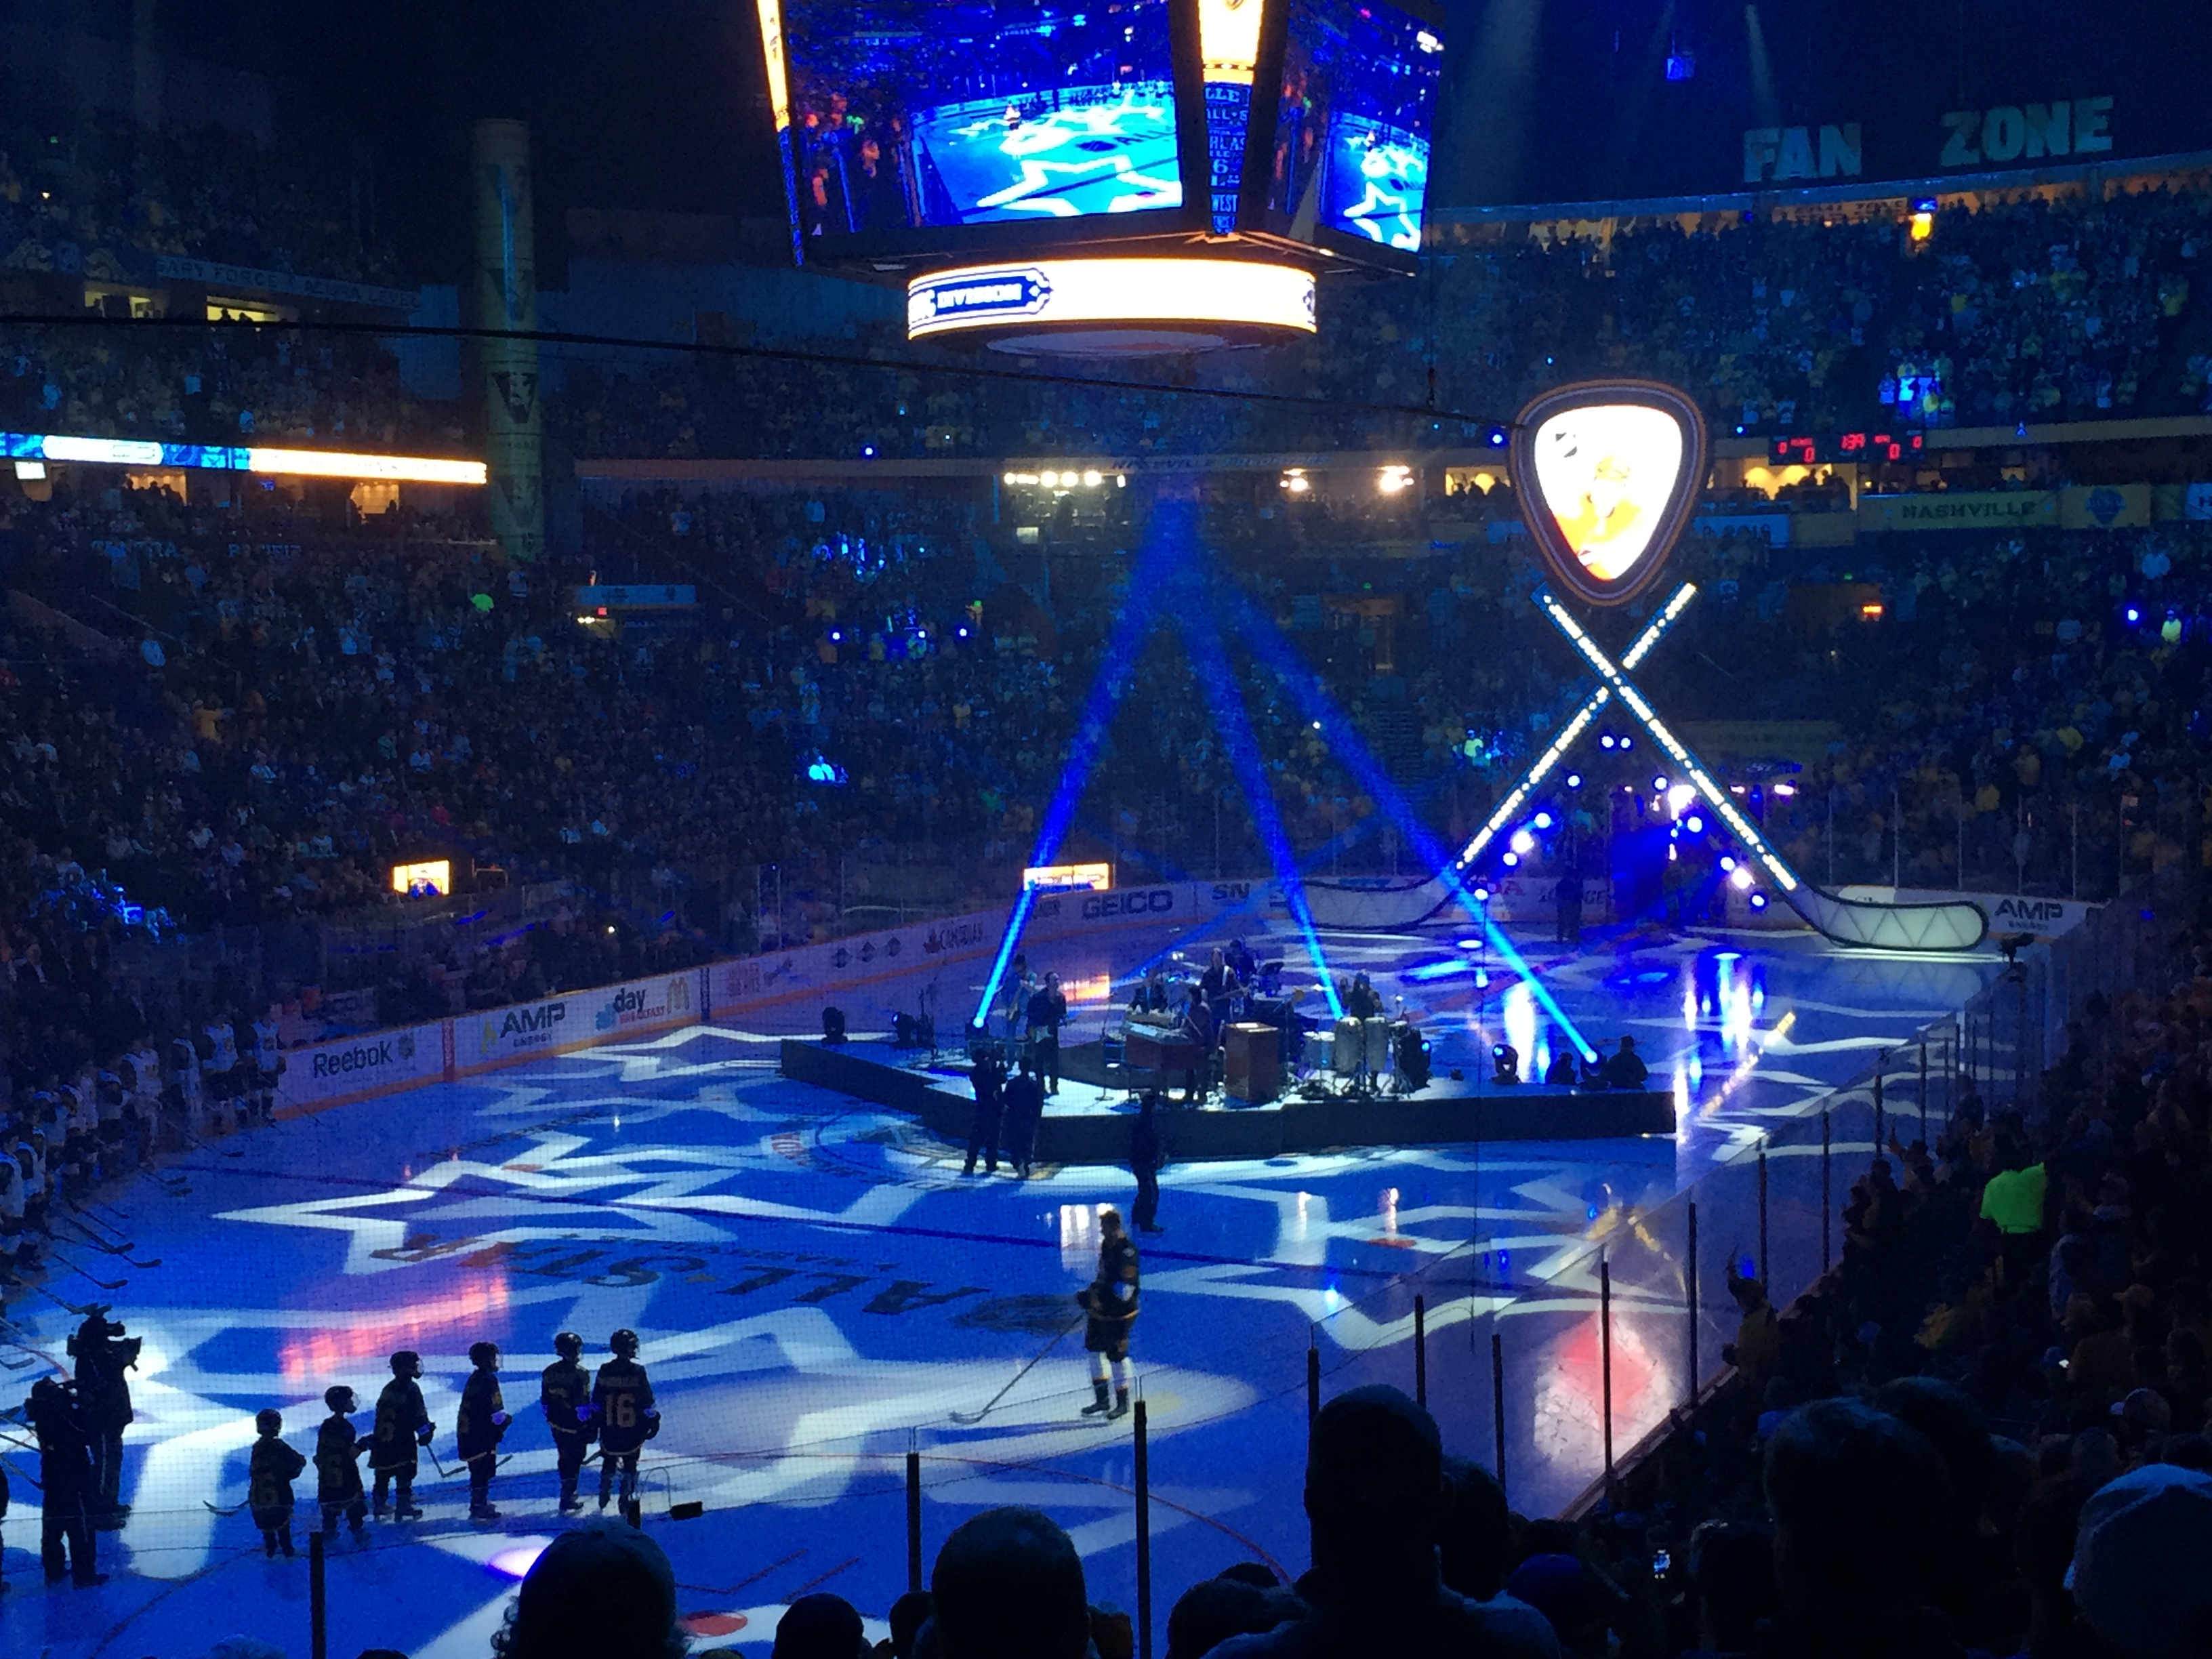 Scott s entrance at the 2016 NHL All-Star Game 1d96fed22